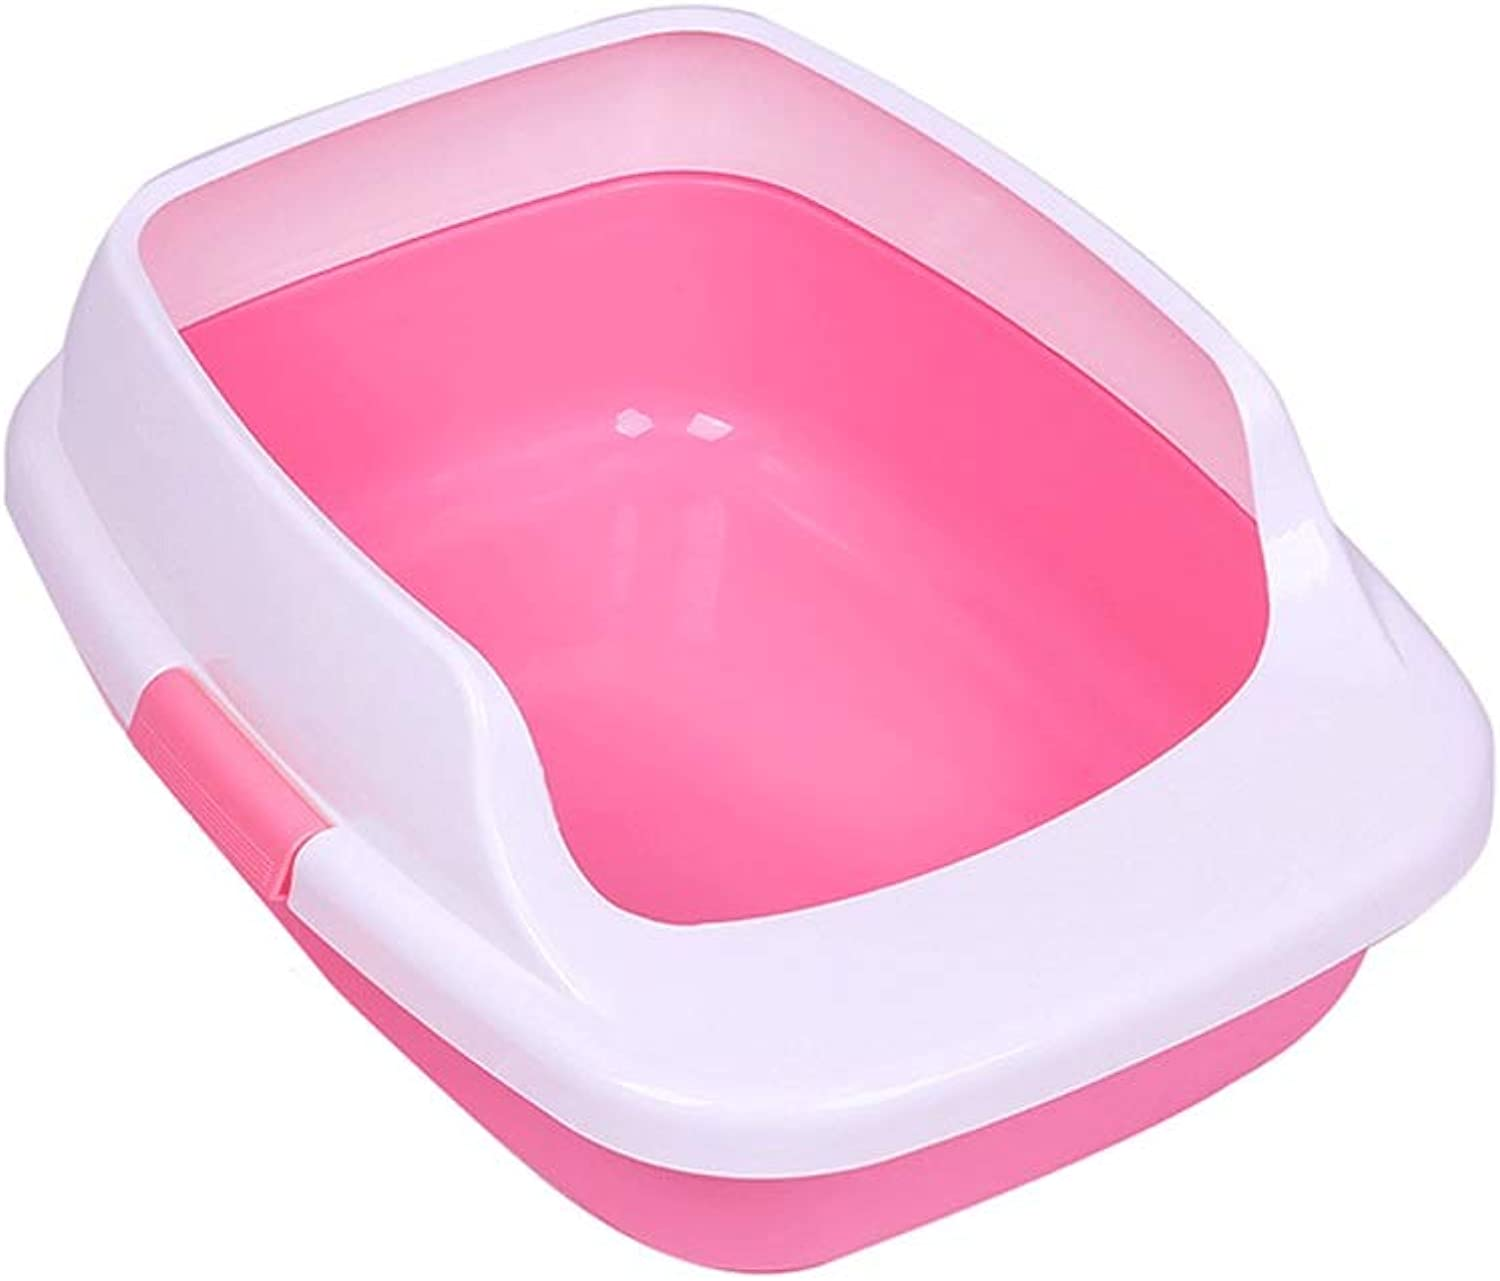 LMM HOME Semienclosed Cat Litter Basin To Prevent Spills Outside Cat Toilet Space Large Cat Litter Pot Pet Supplies (color   Pink)